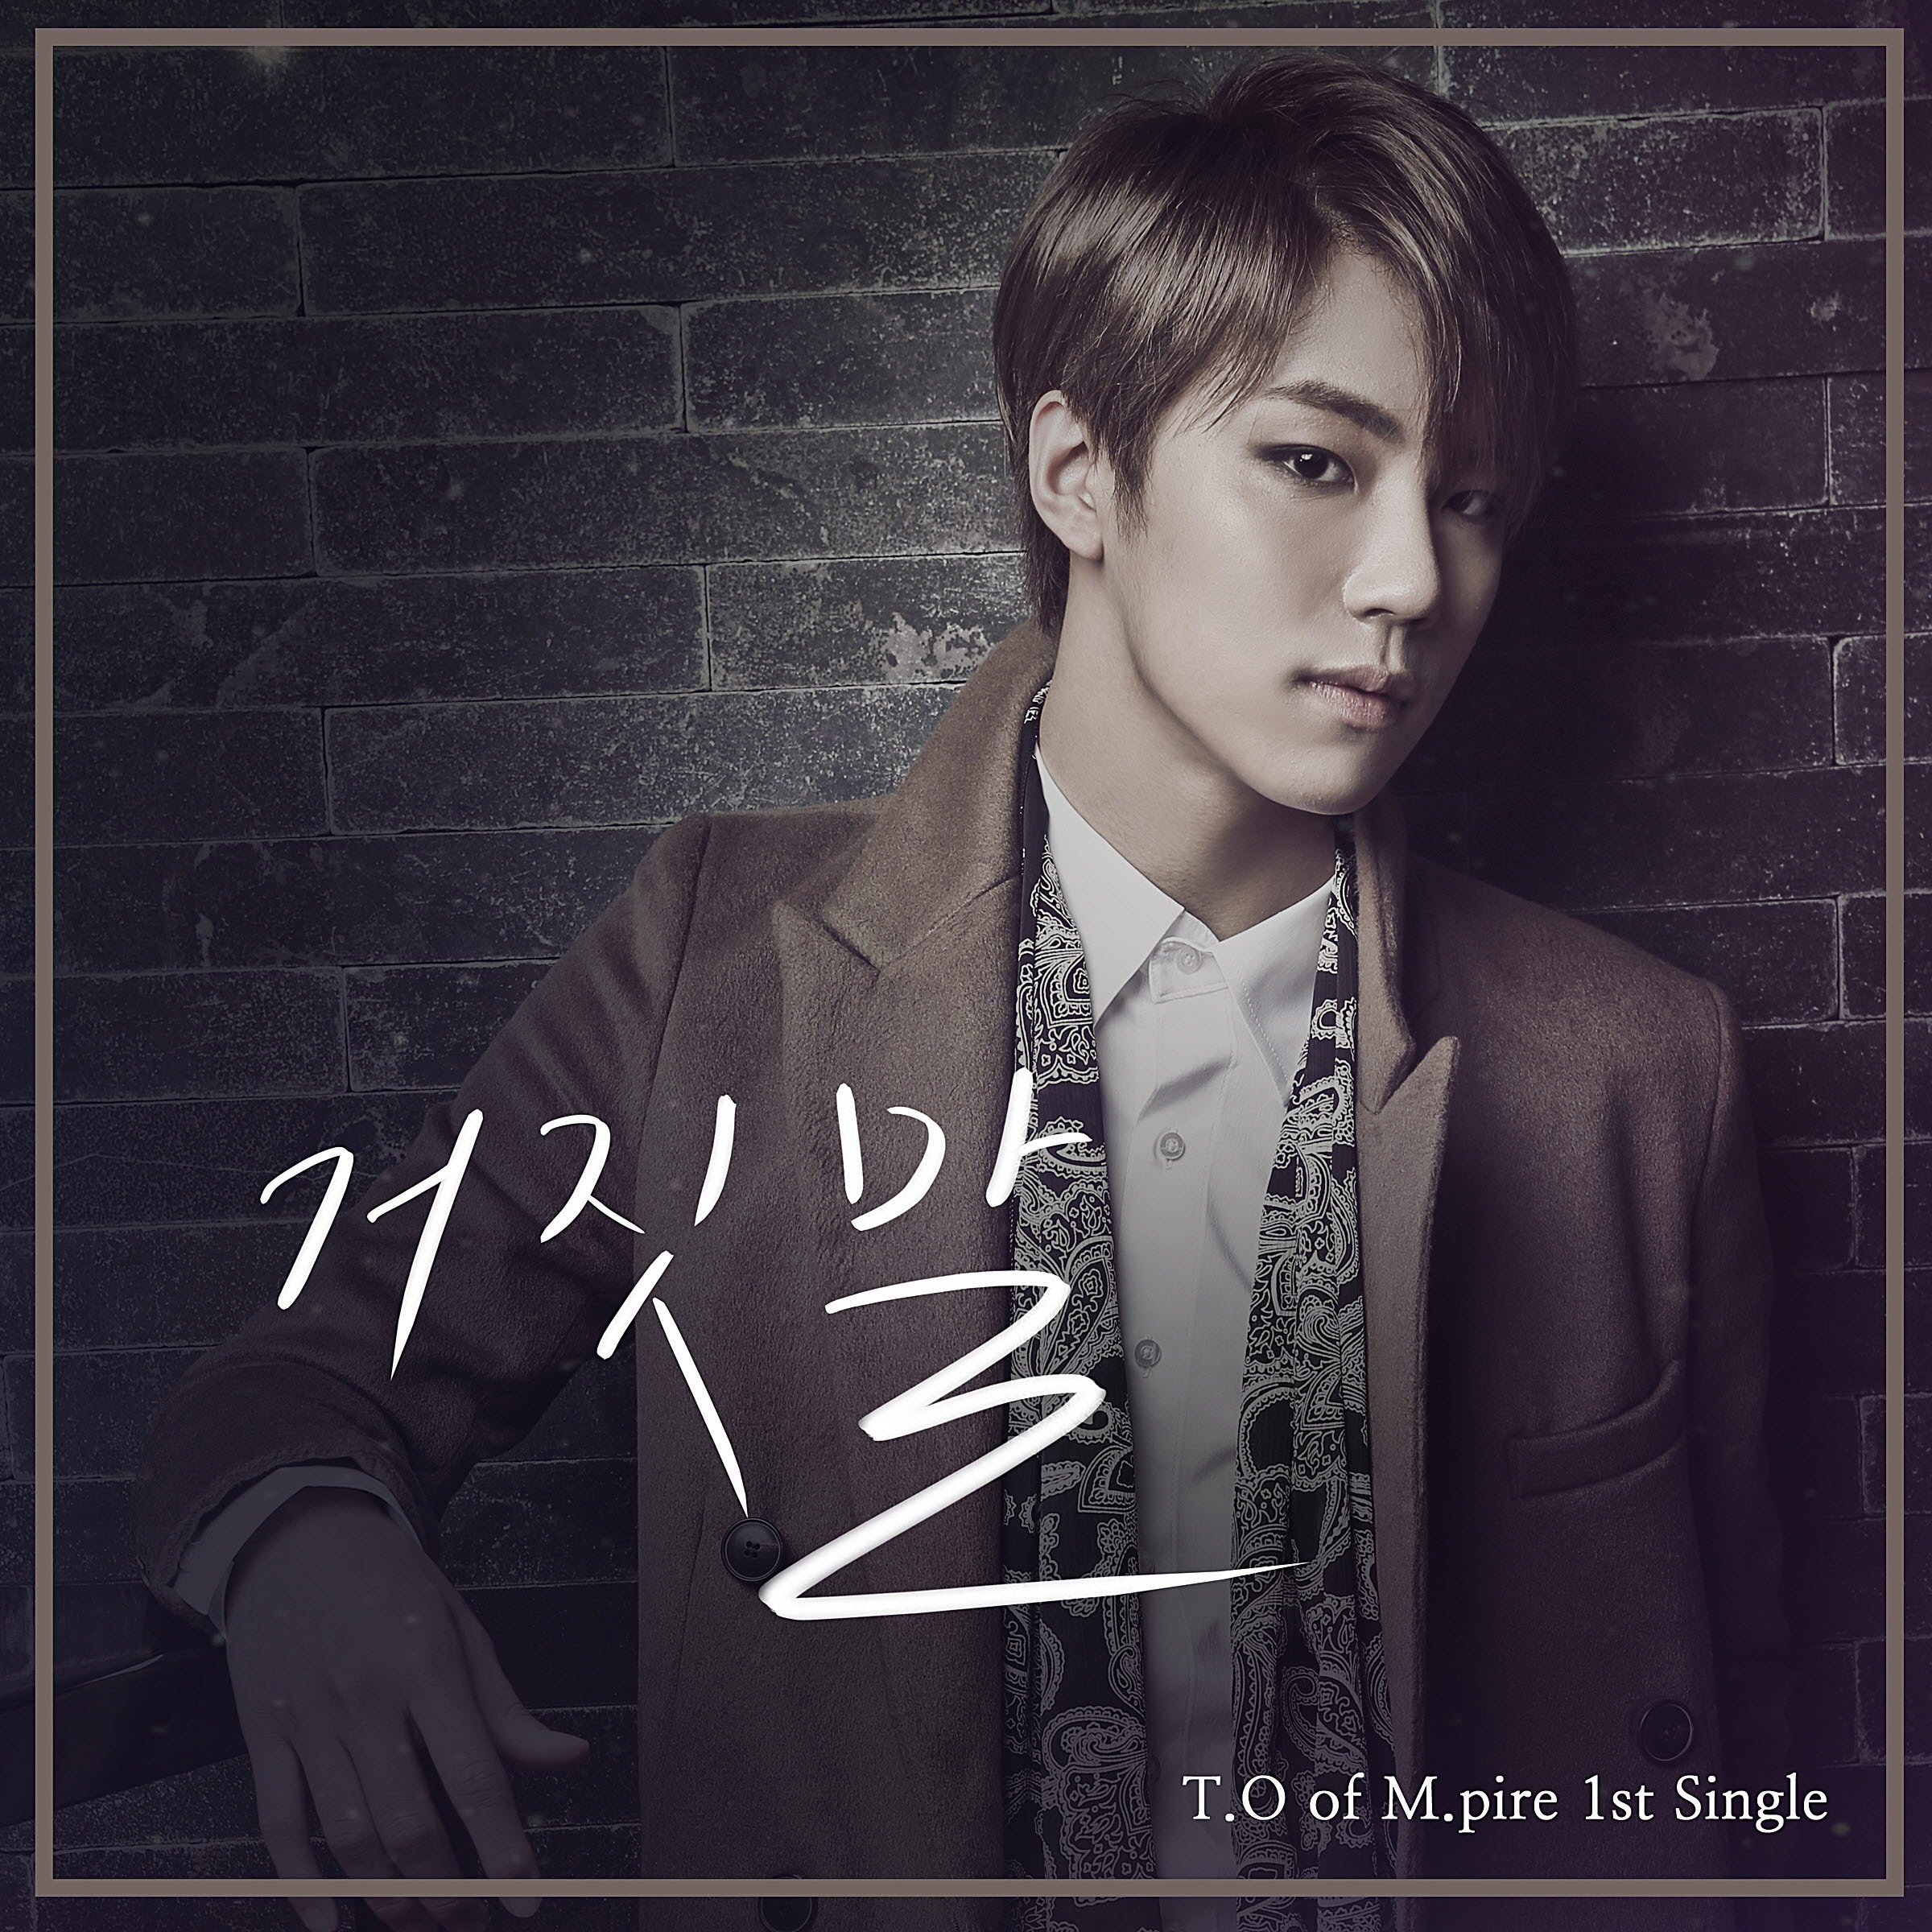 [Single] T.O (M.Pire) - Lie